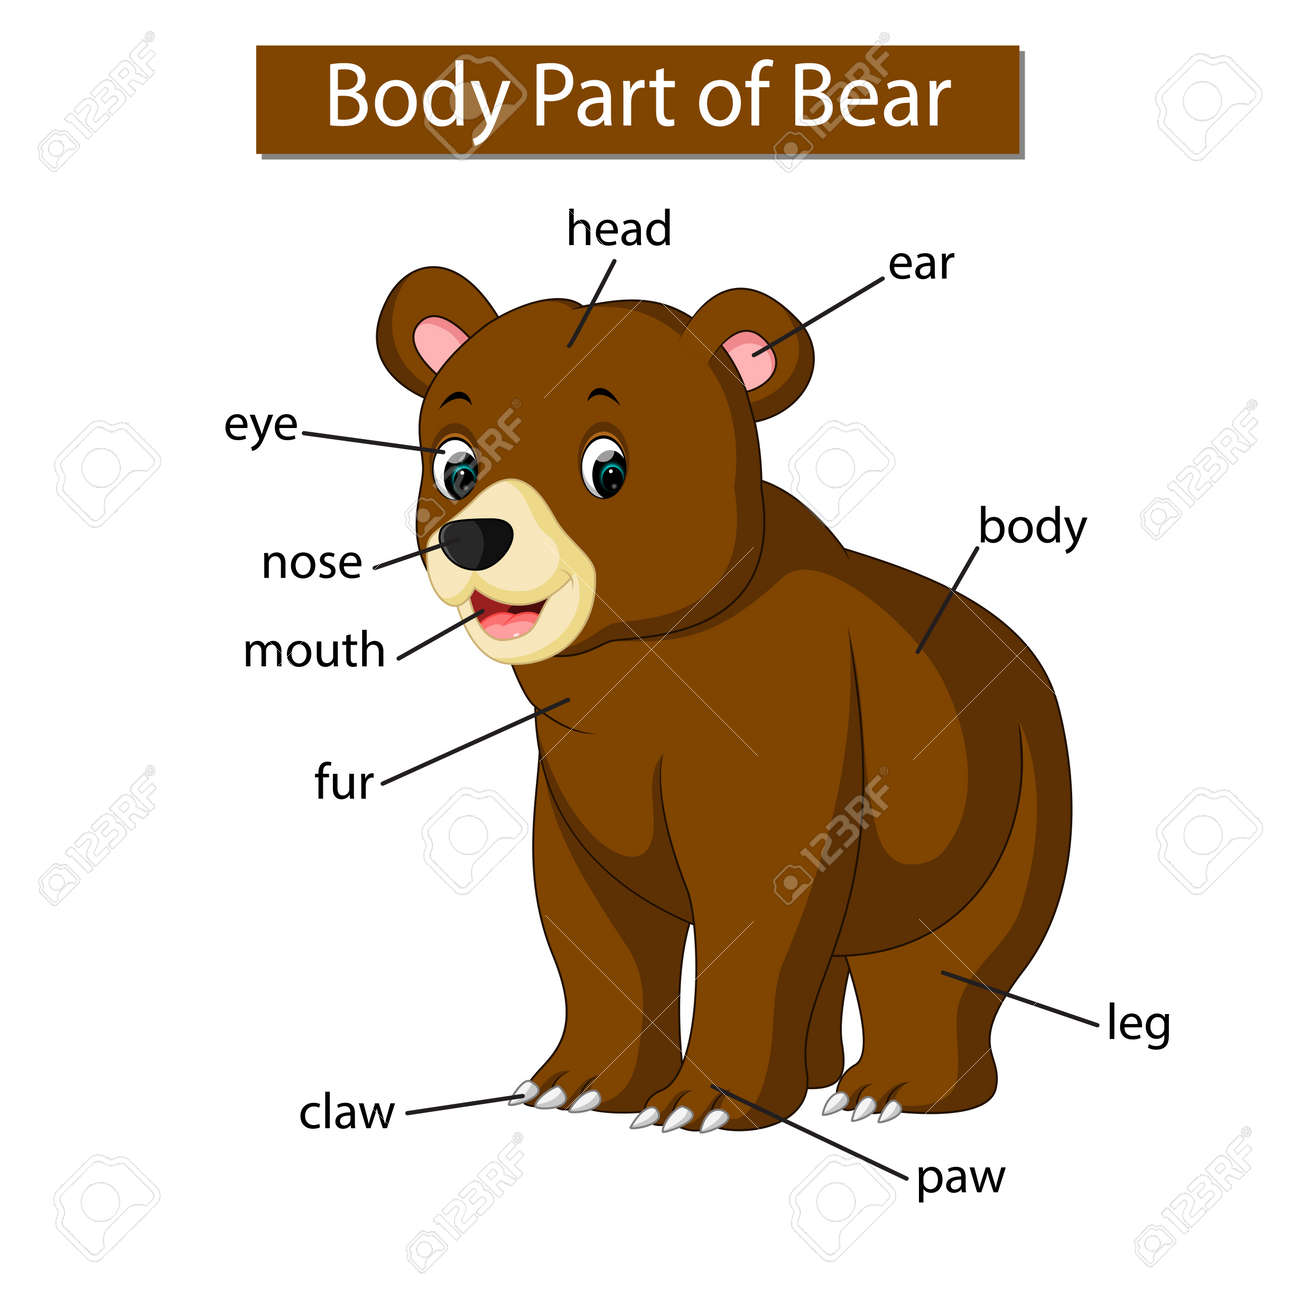 hight resolution of diagram showing body part of bear stock photo picture and royaltydiagram showing body part of